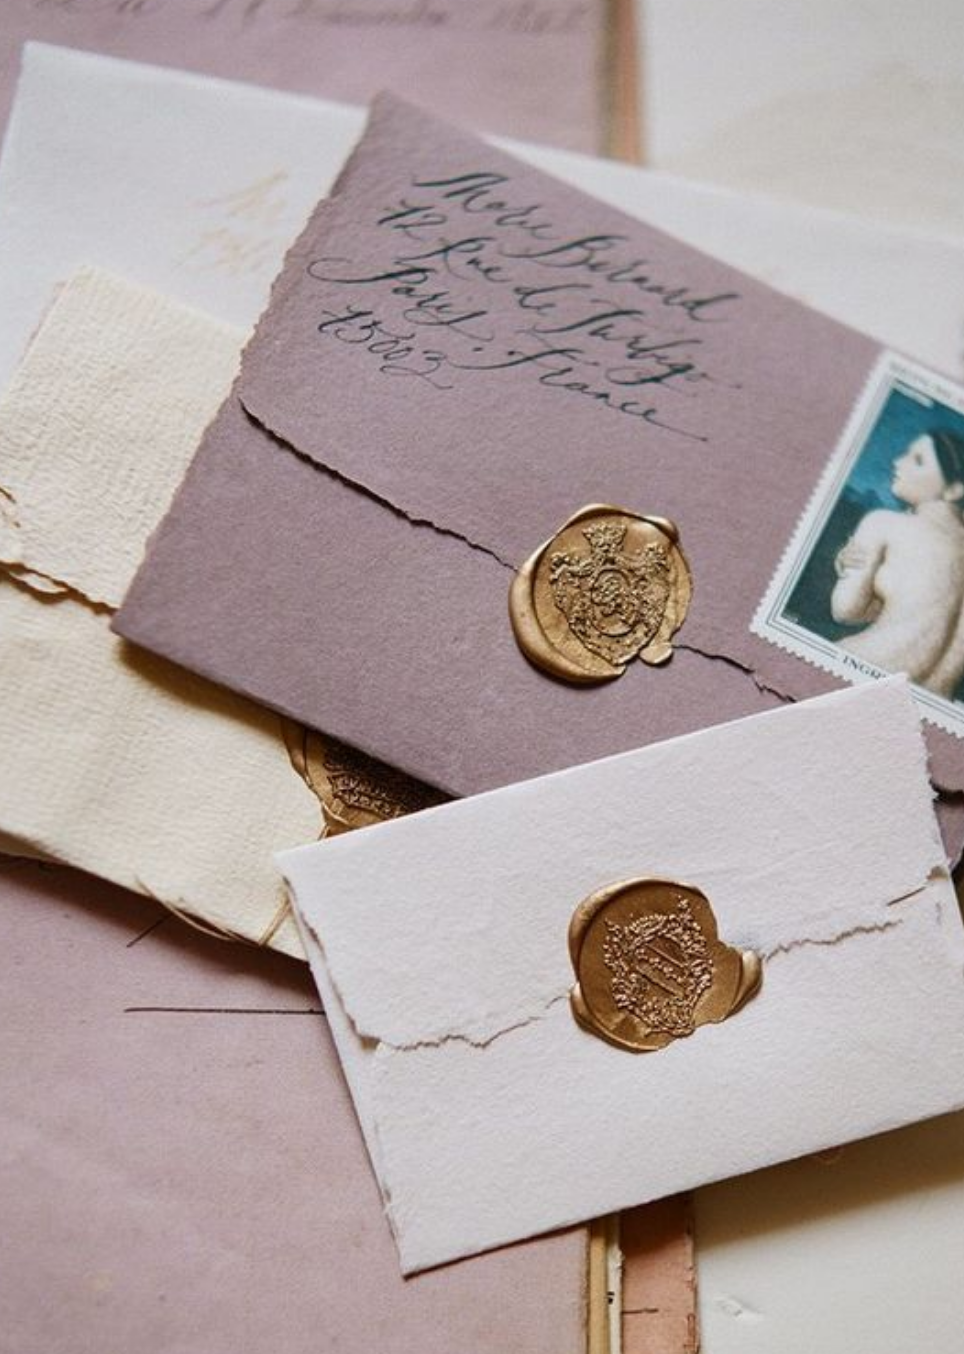 Vintage Inspired Stationery - These hand addressed envelopes with vintage stamps and a gold wax seal are gorgeous.